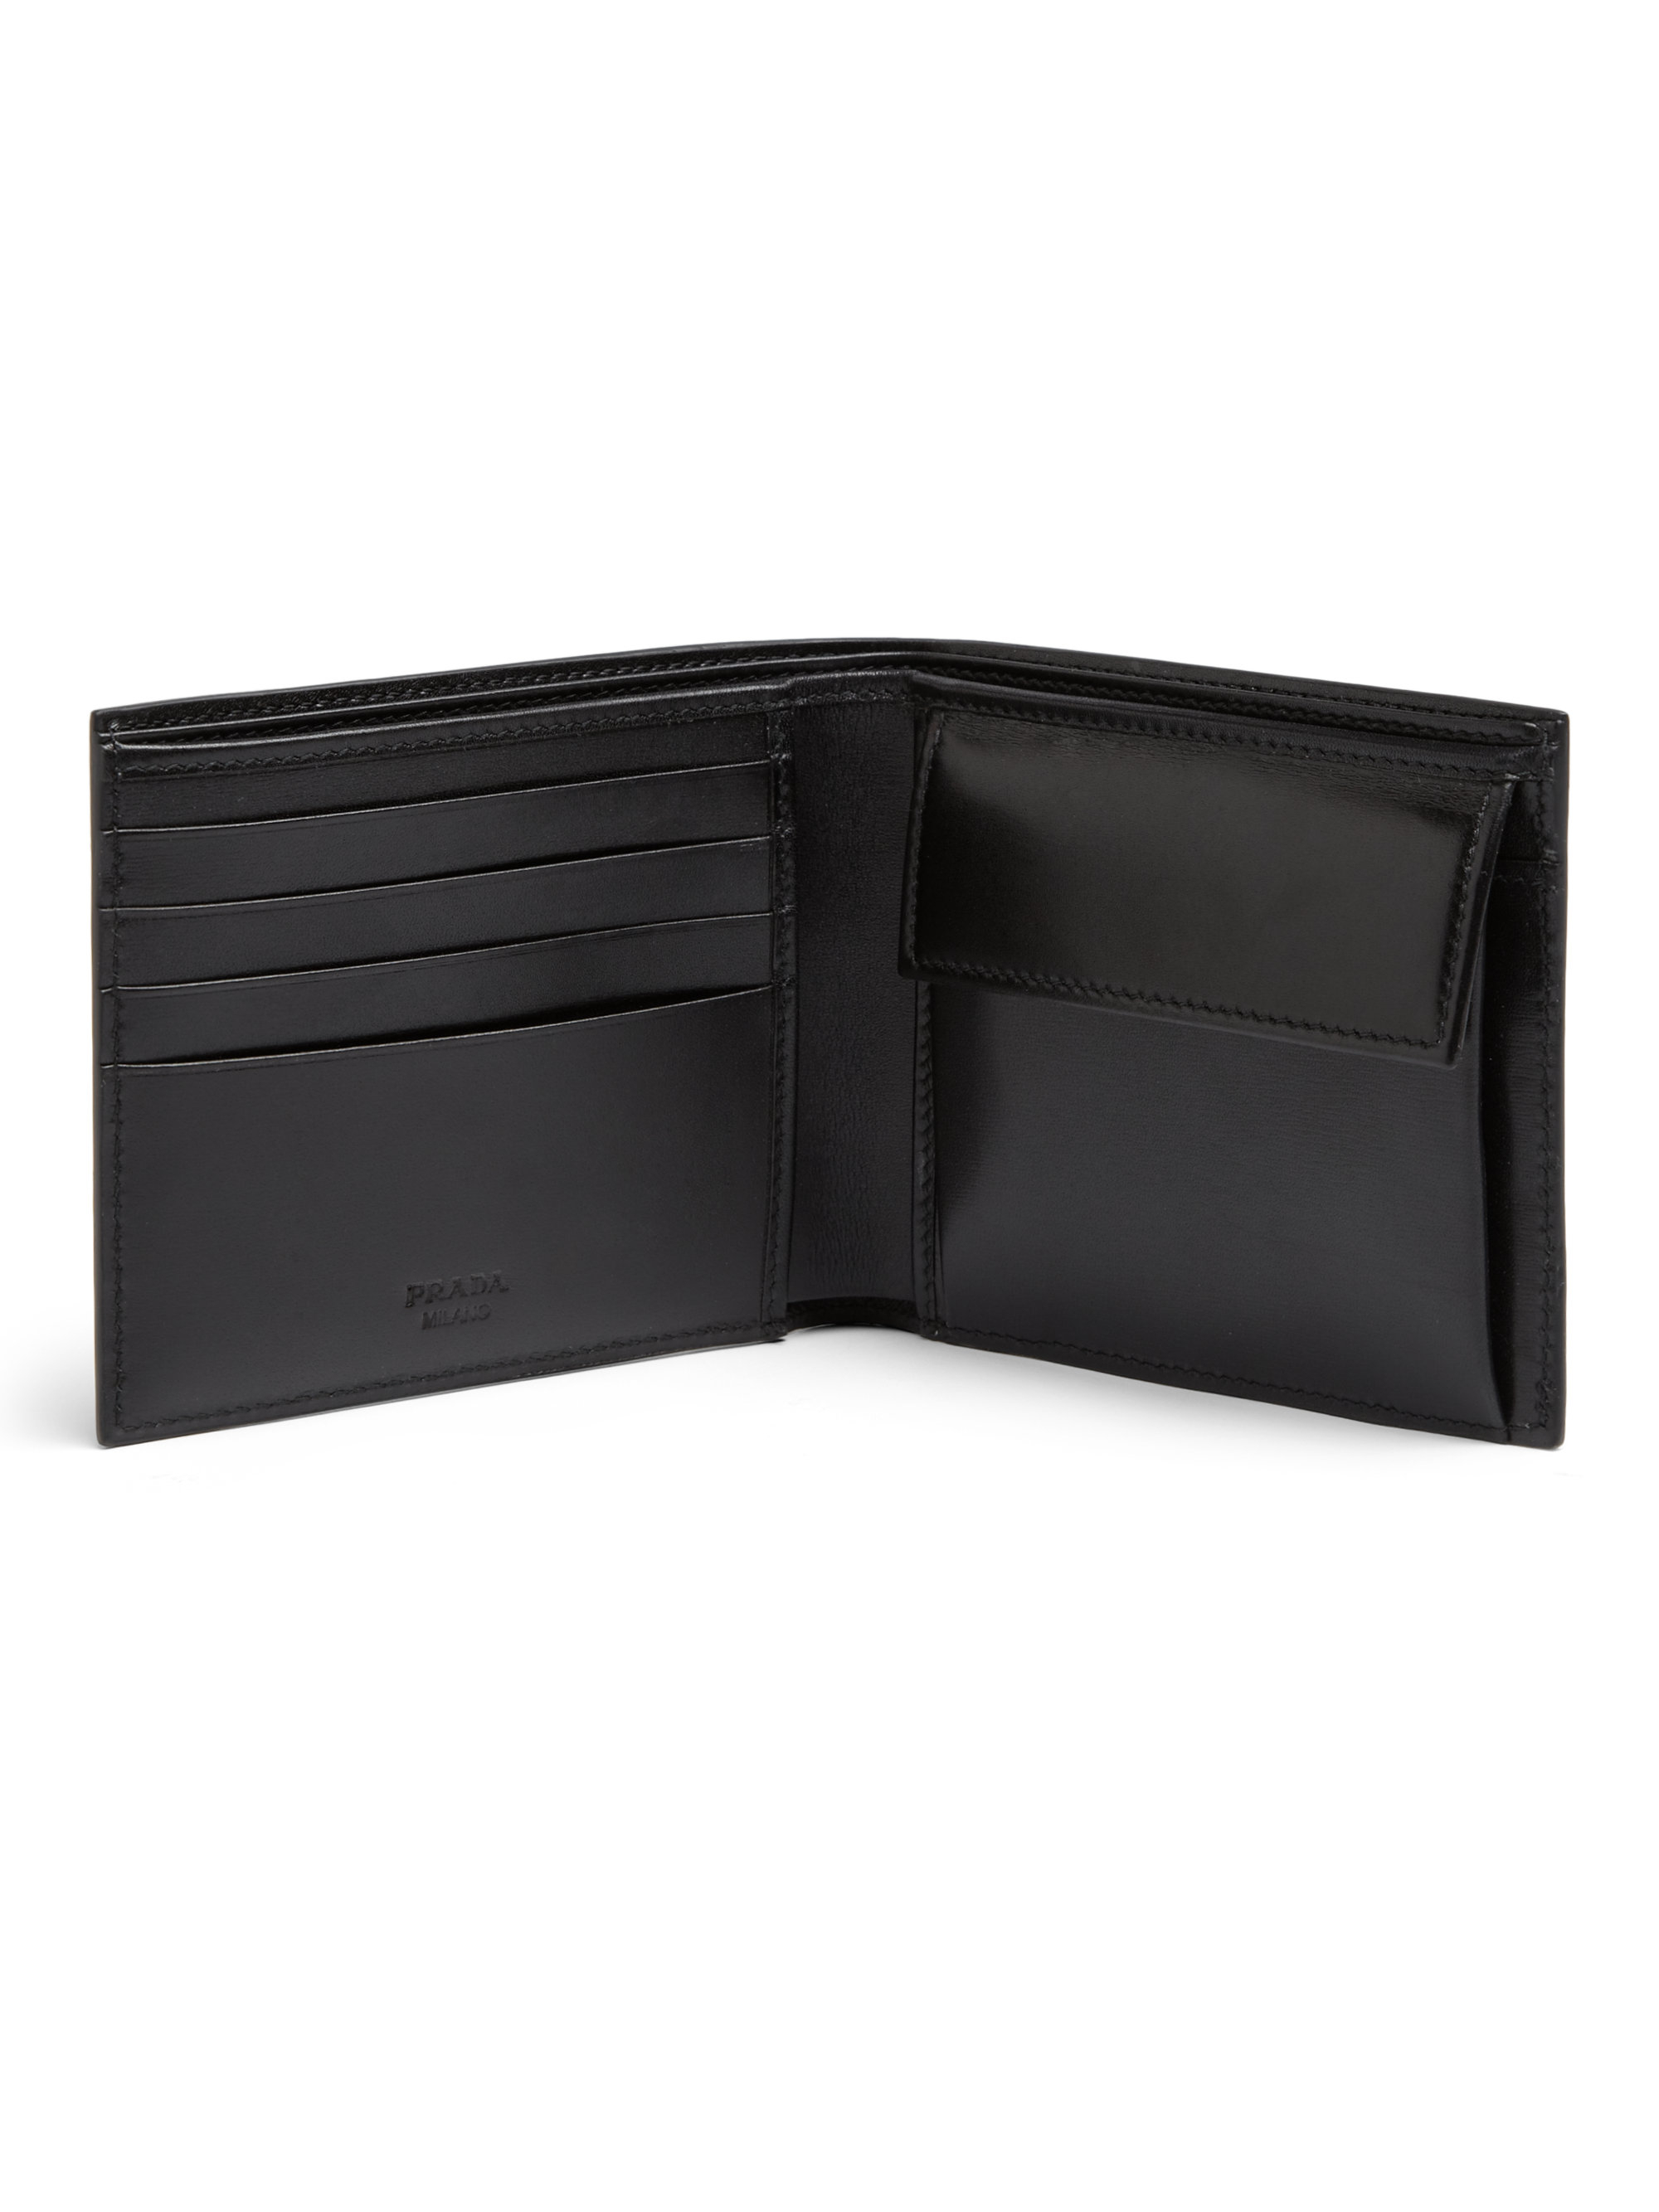 075cc9ea494f Prada Calf Leather Billfold Wallet With Coin Pouch in Black for Men ...